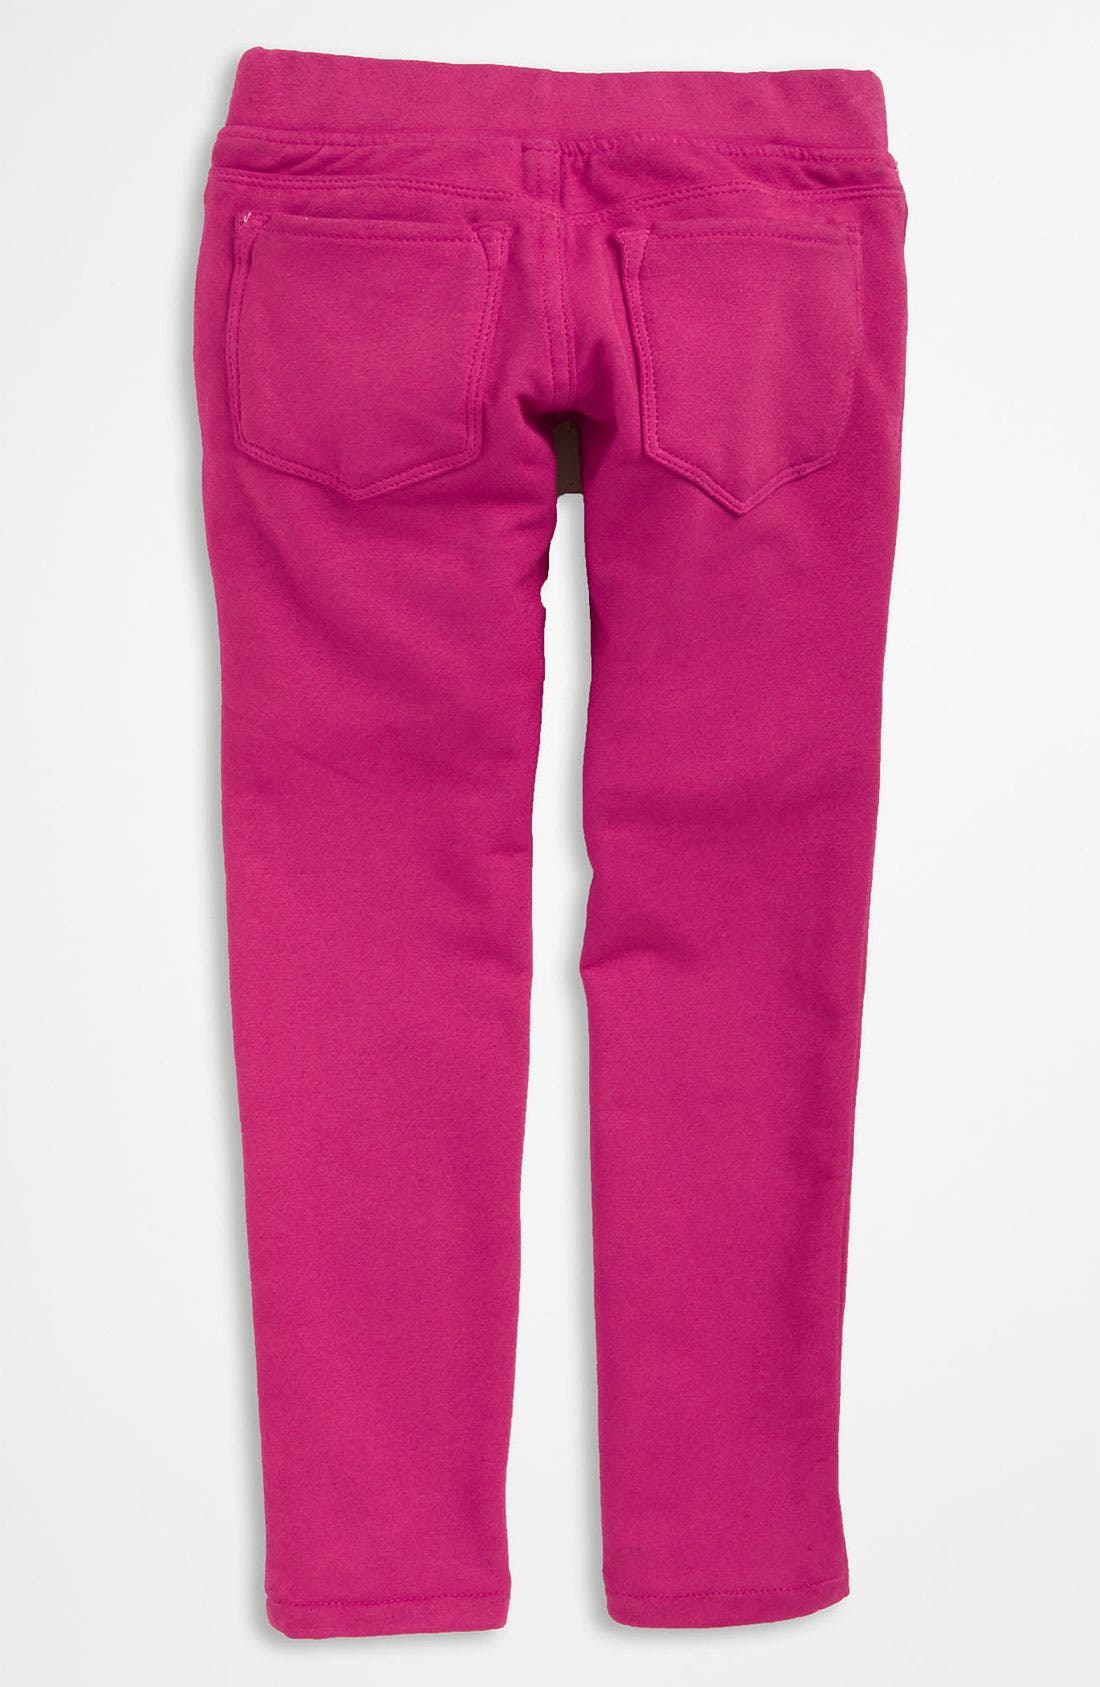 Main Image - Tractr French Terry Leggings (Little Girls)